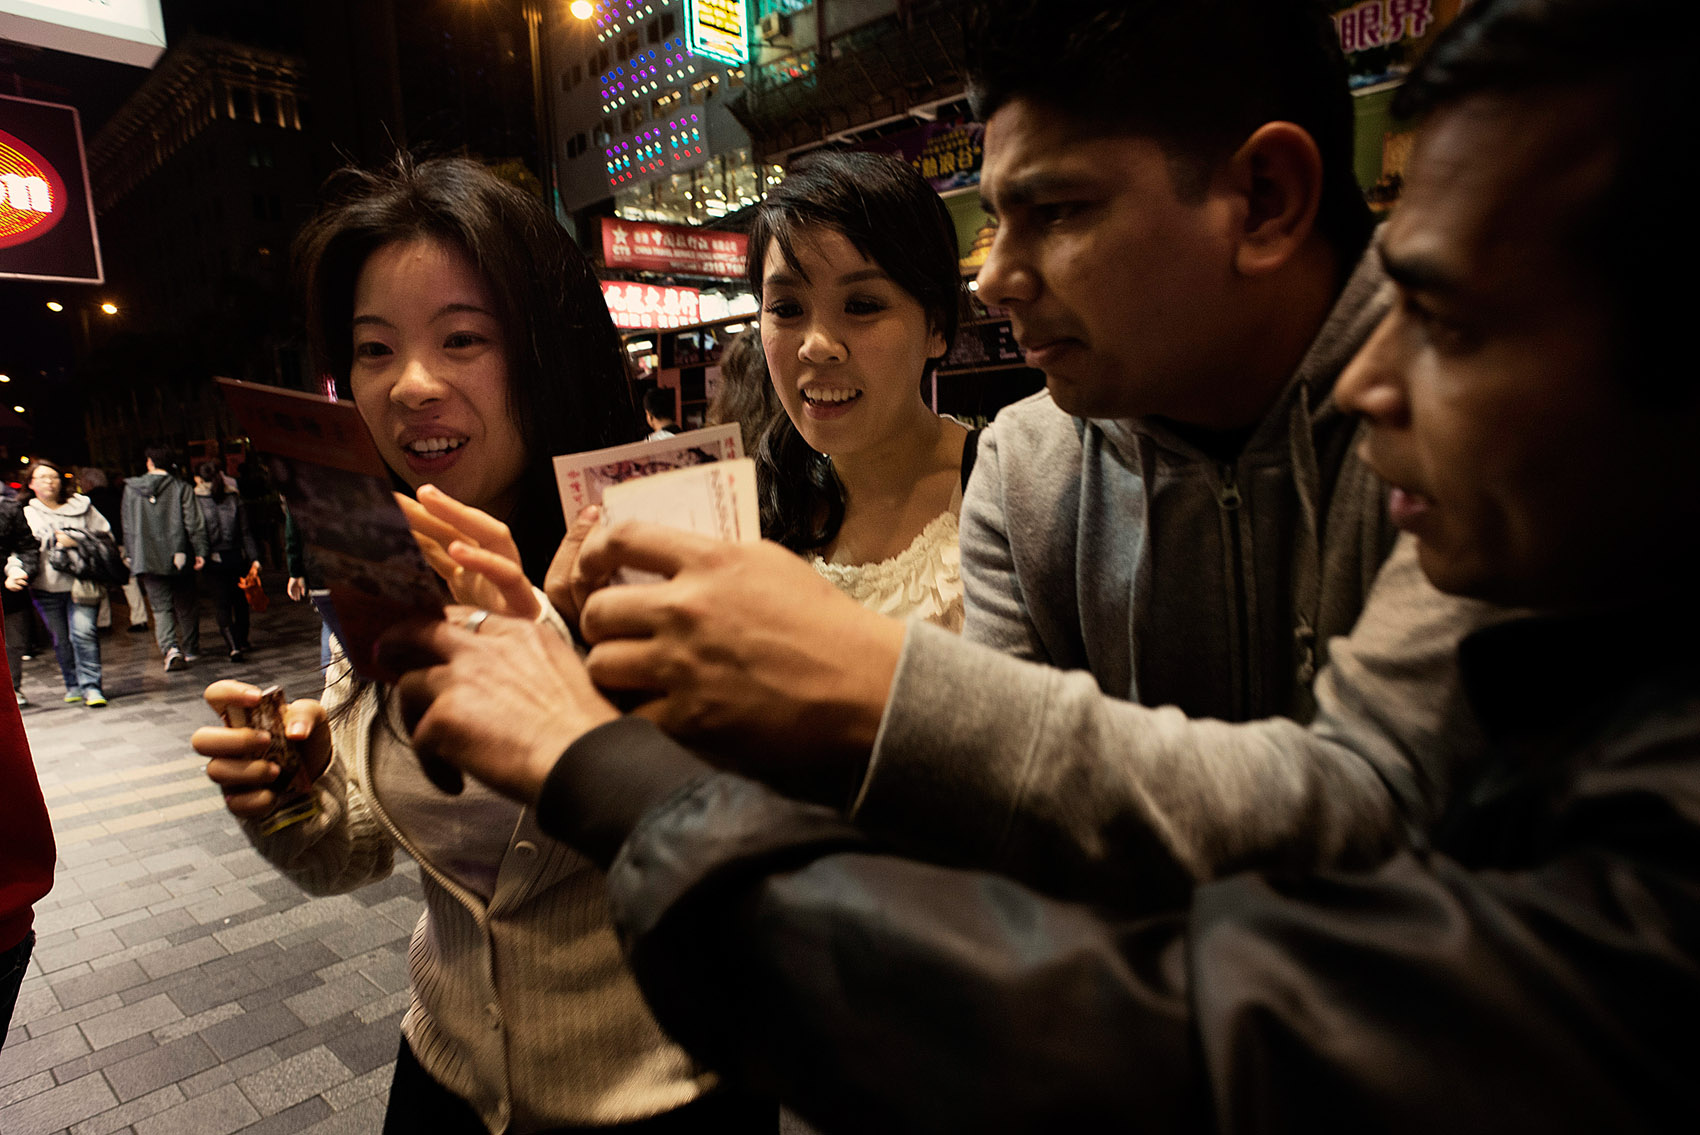 In front of the Chungking Mansions touts trying to lure locals into Indian restaurants..